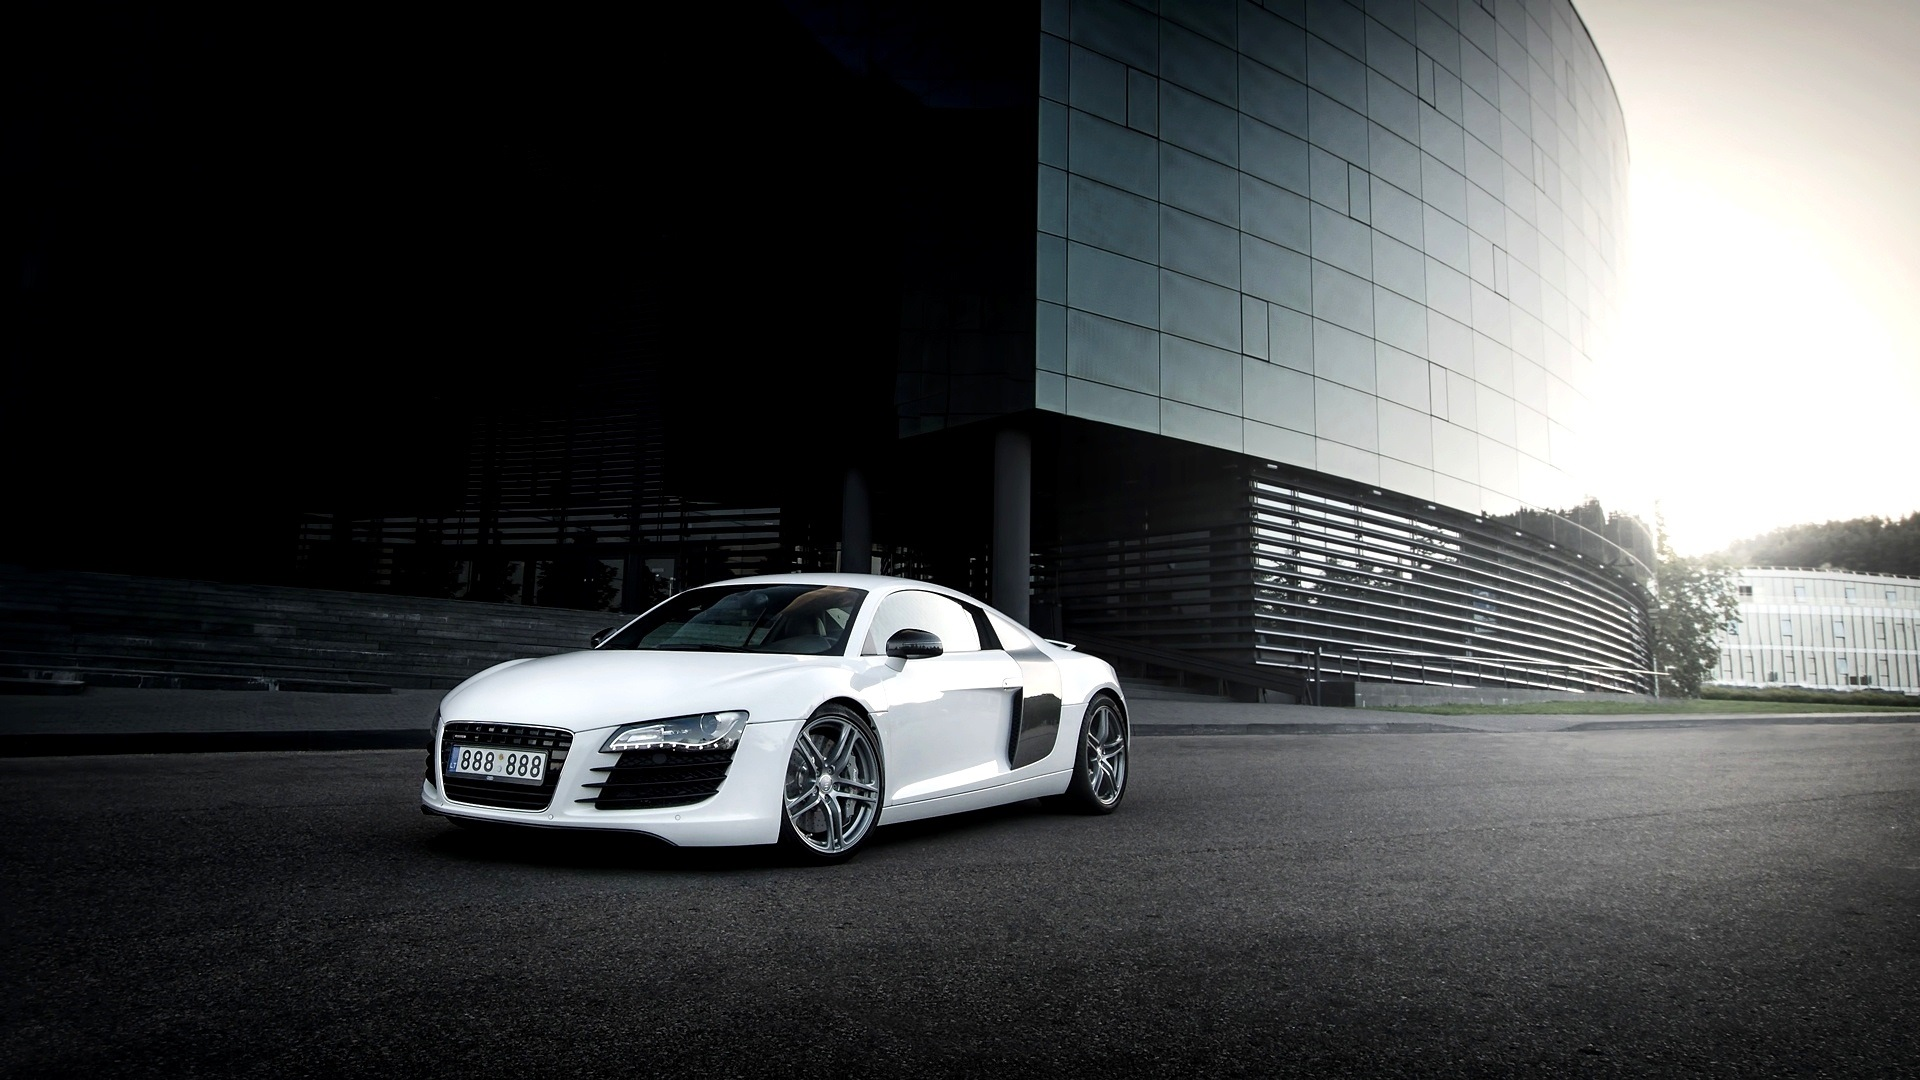 fonds d 39 cran audi r8 voiture blanche la ville l 39 blouissement 1920x1080 full hd 2k image. Black Bedroom Furniture Sets. Home Design Ideas